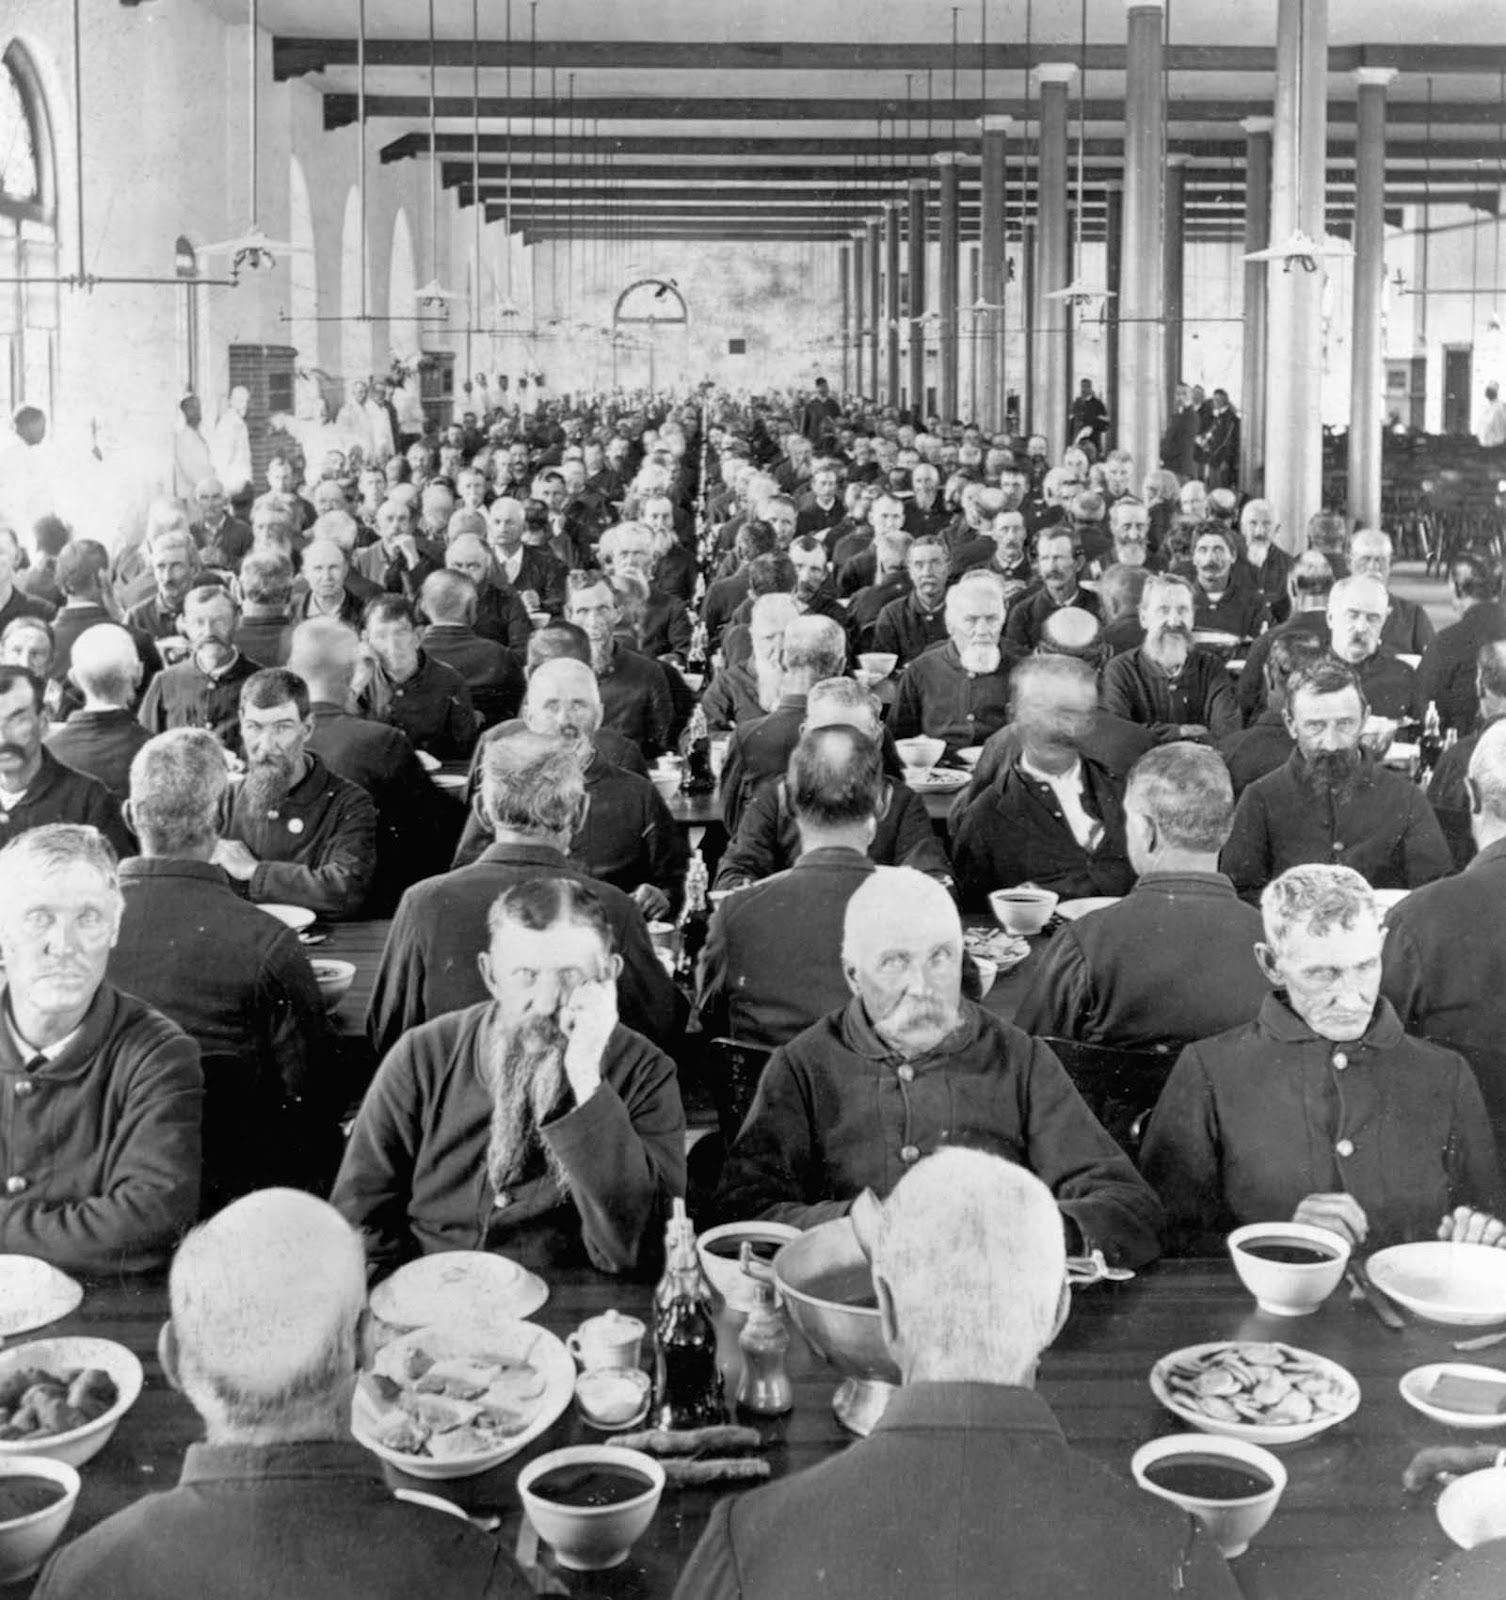 Marion, Indiana — Veterans eat their meals in the dining hall of the National Soldiers' Home, a facility for the care of disabled American veterans, many from the Civil War. 1898.